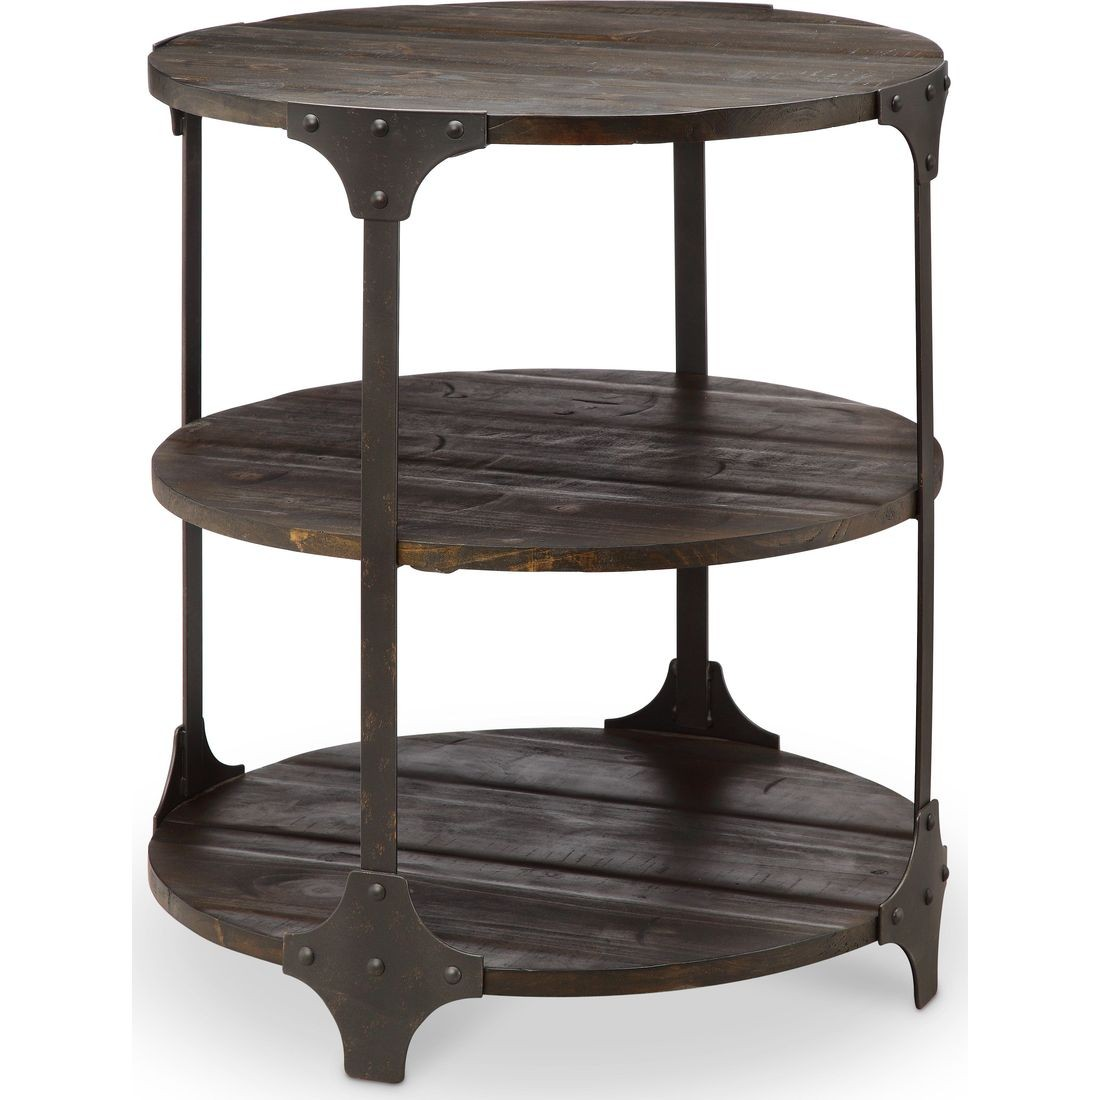 magnussen rydale round accent table dark chocolate aged iron ikea fabric storage foyer furniture pieces bunnings outdoor lounge nesting tables console bookshelf with legs pier one